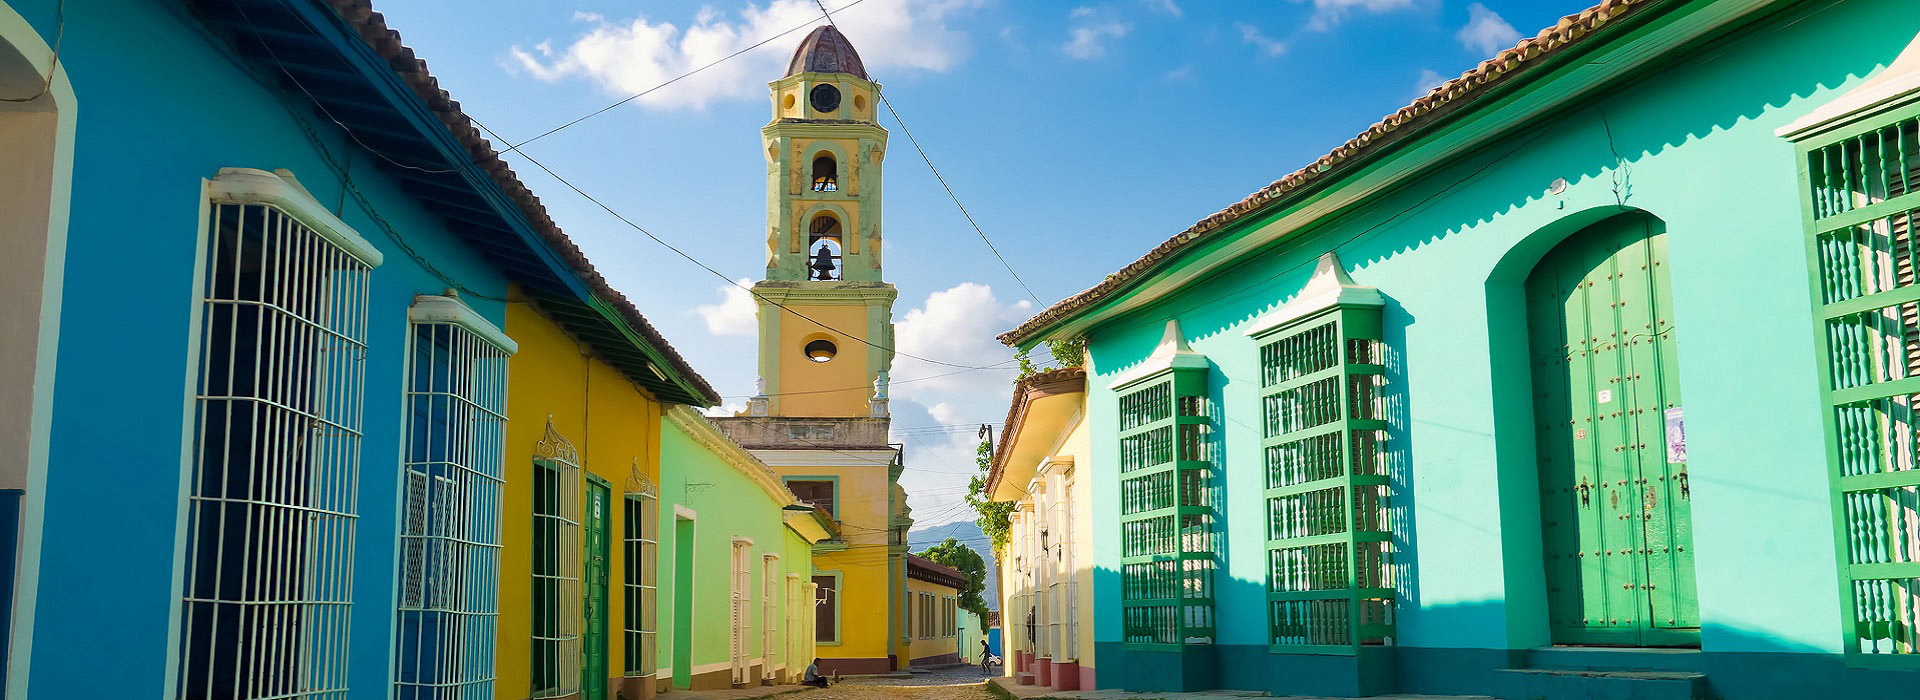 colorful_traditional_houses_trinidad